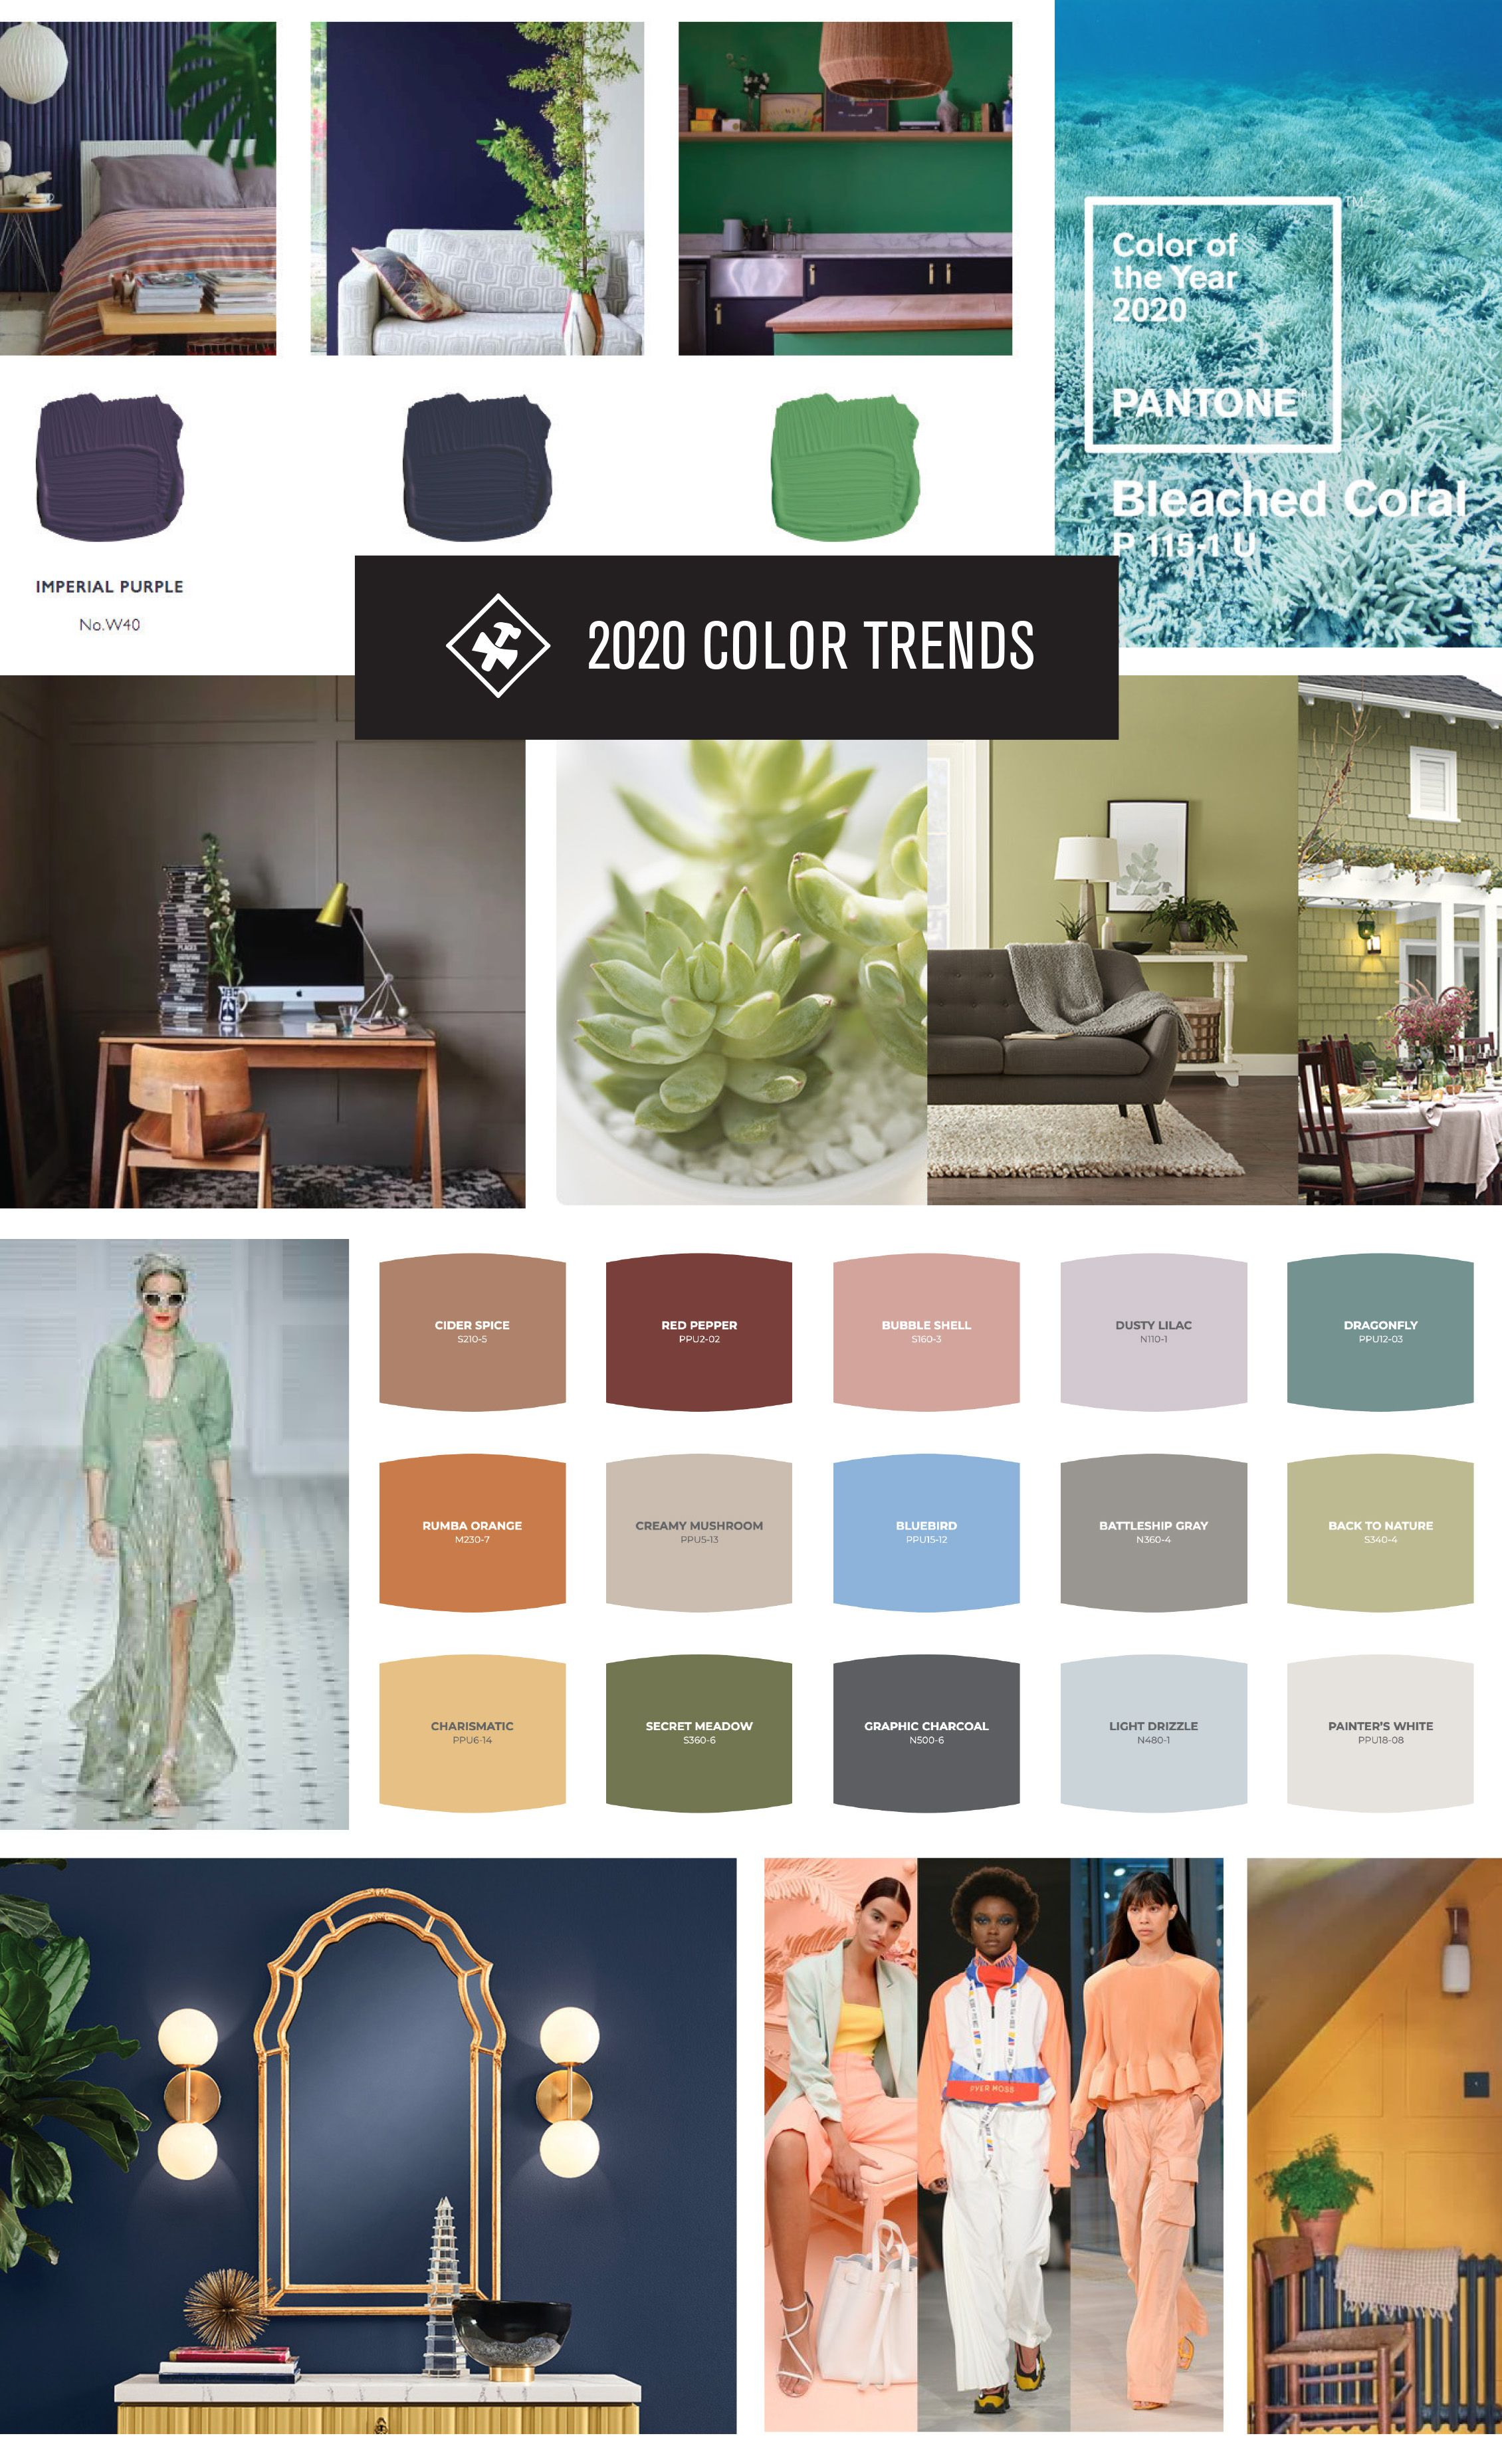 2020 Color Trends For Your Home Guide Construction2s